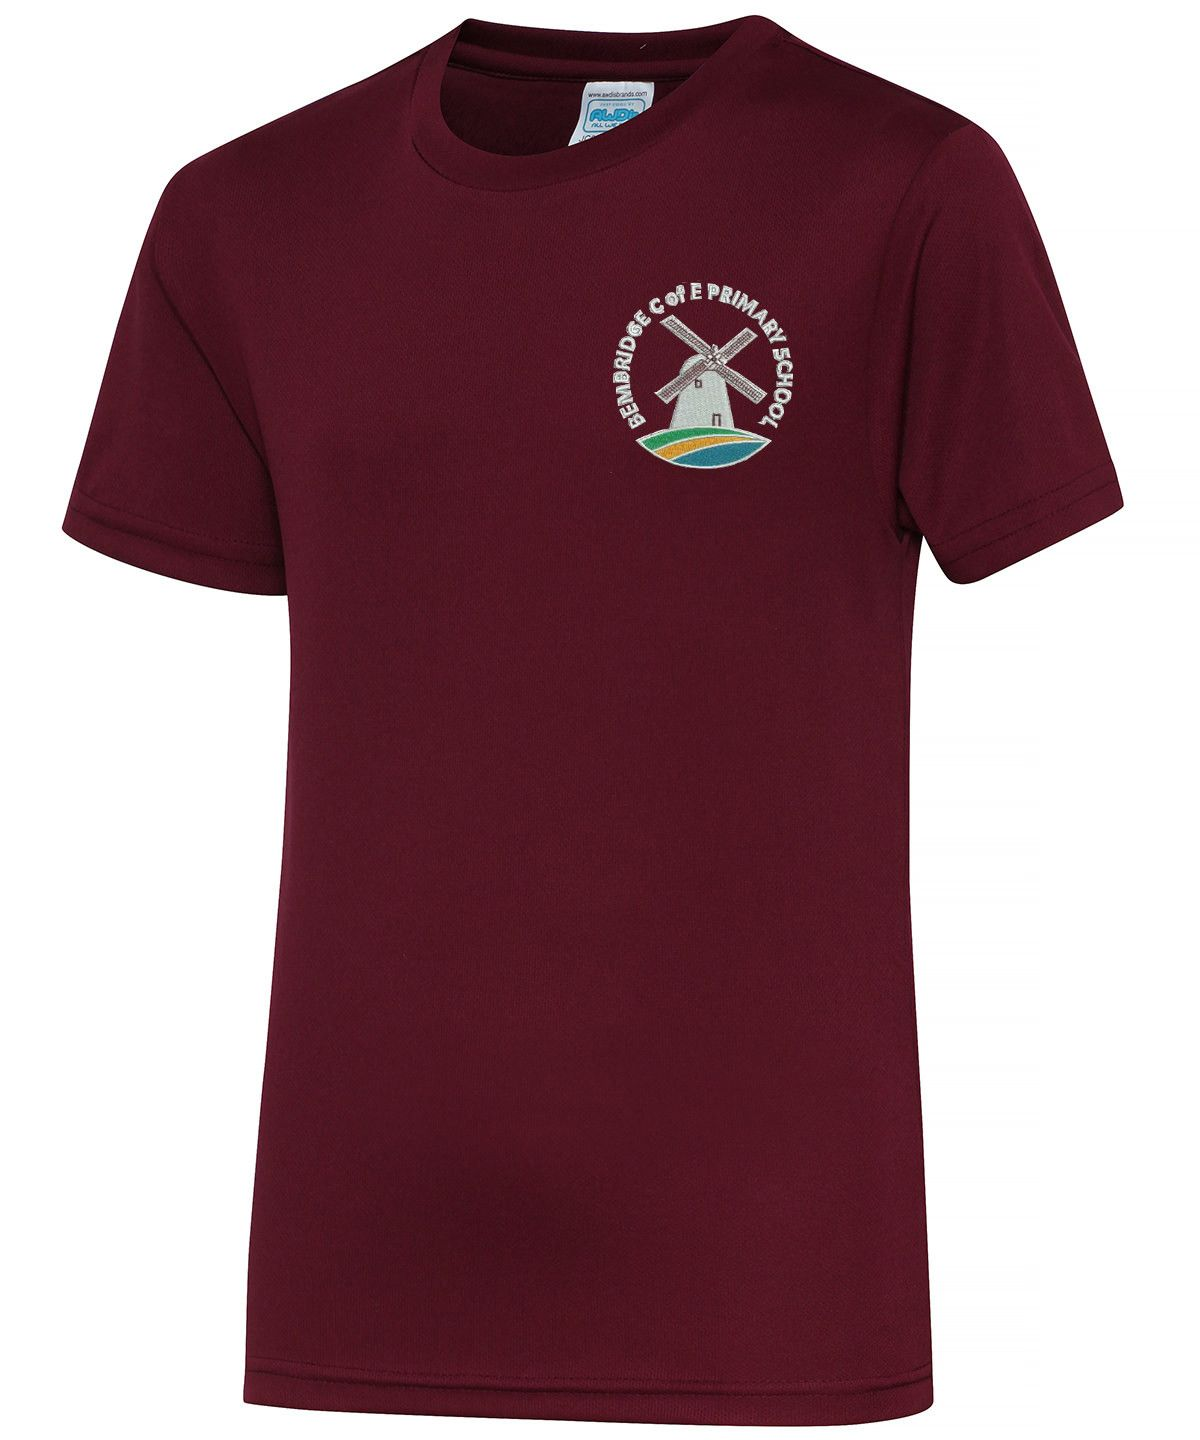 Bembridge P.E T-shirt